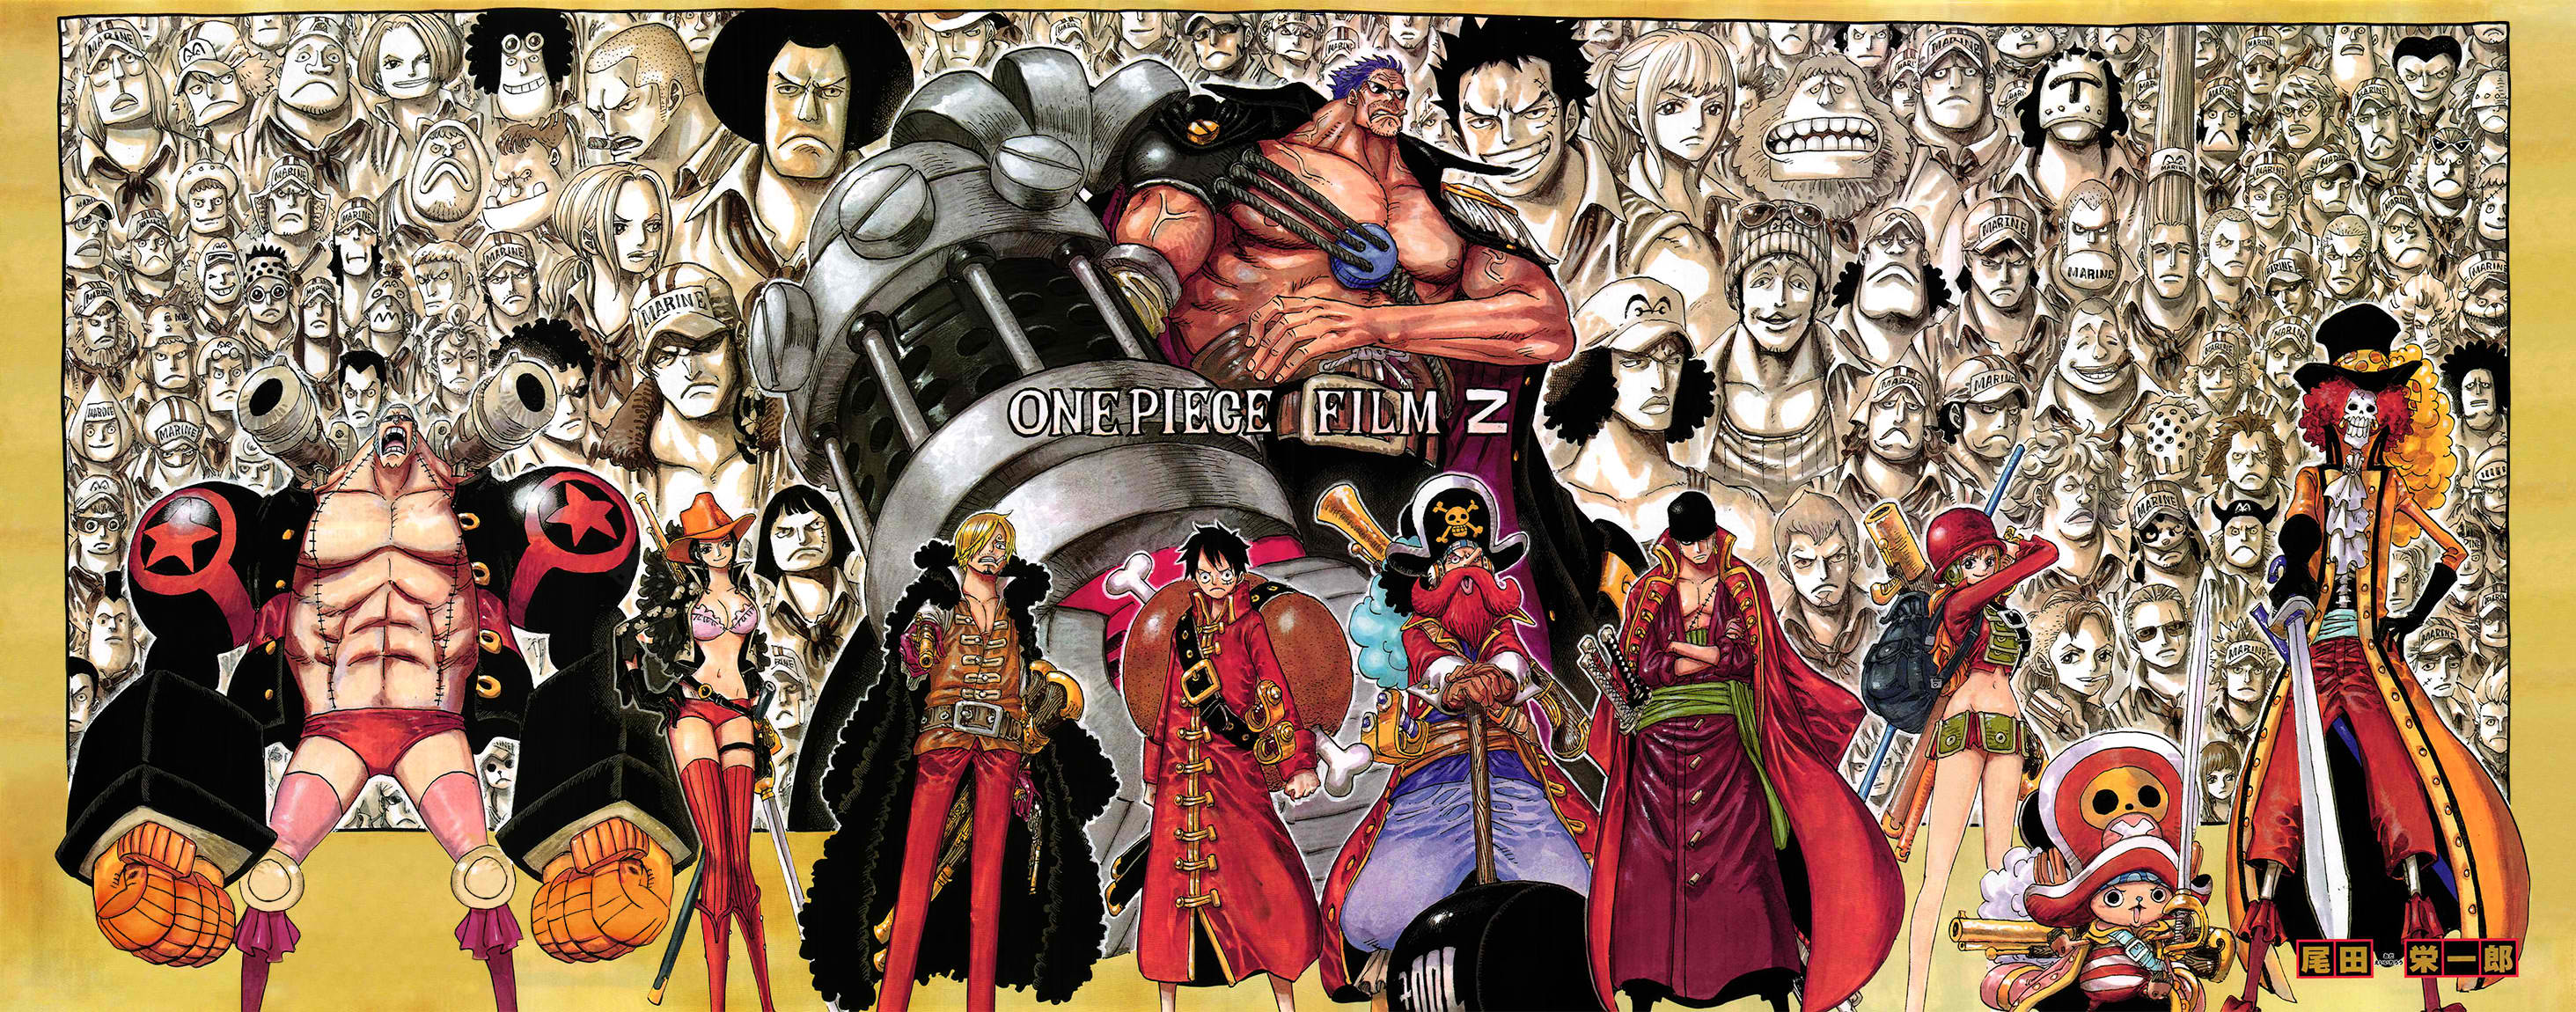 one piece film z review simple does it leviathyn. Black Bedroom Furniture Sets. Home Design Ideas